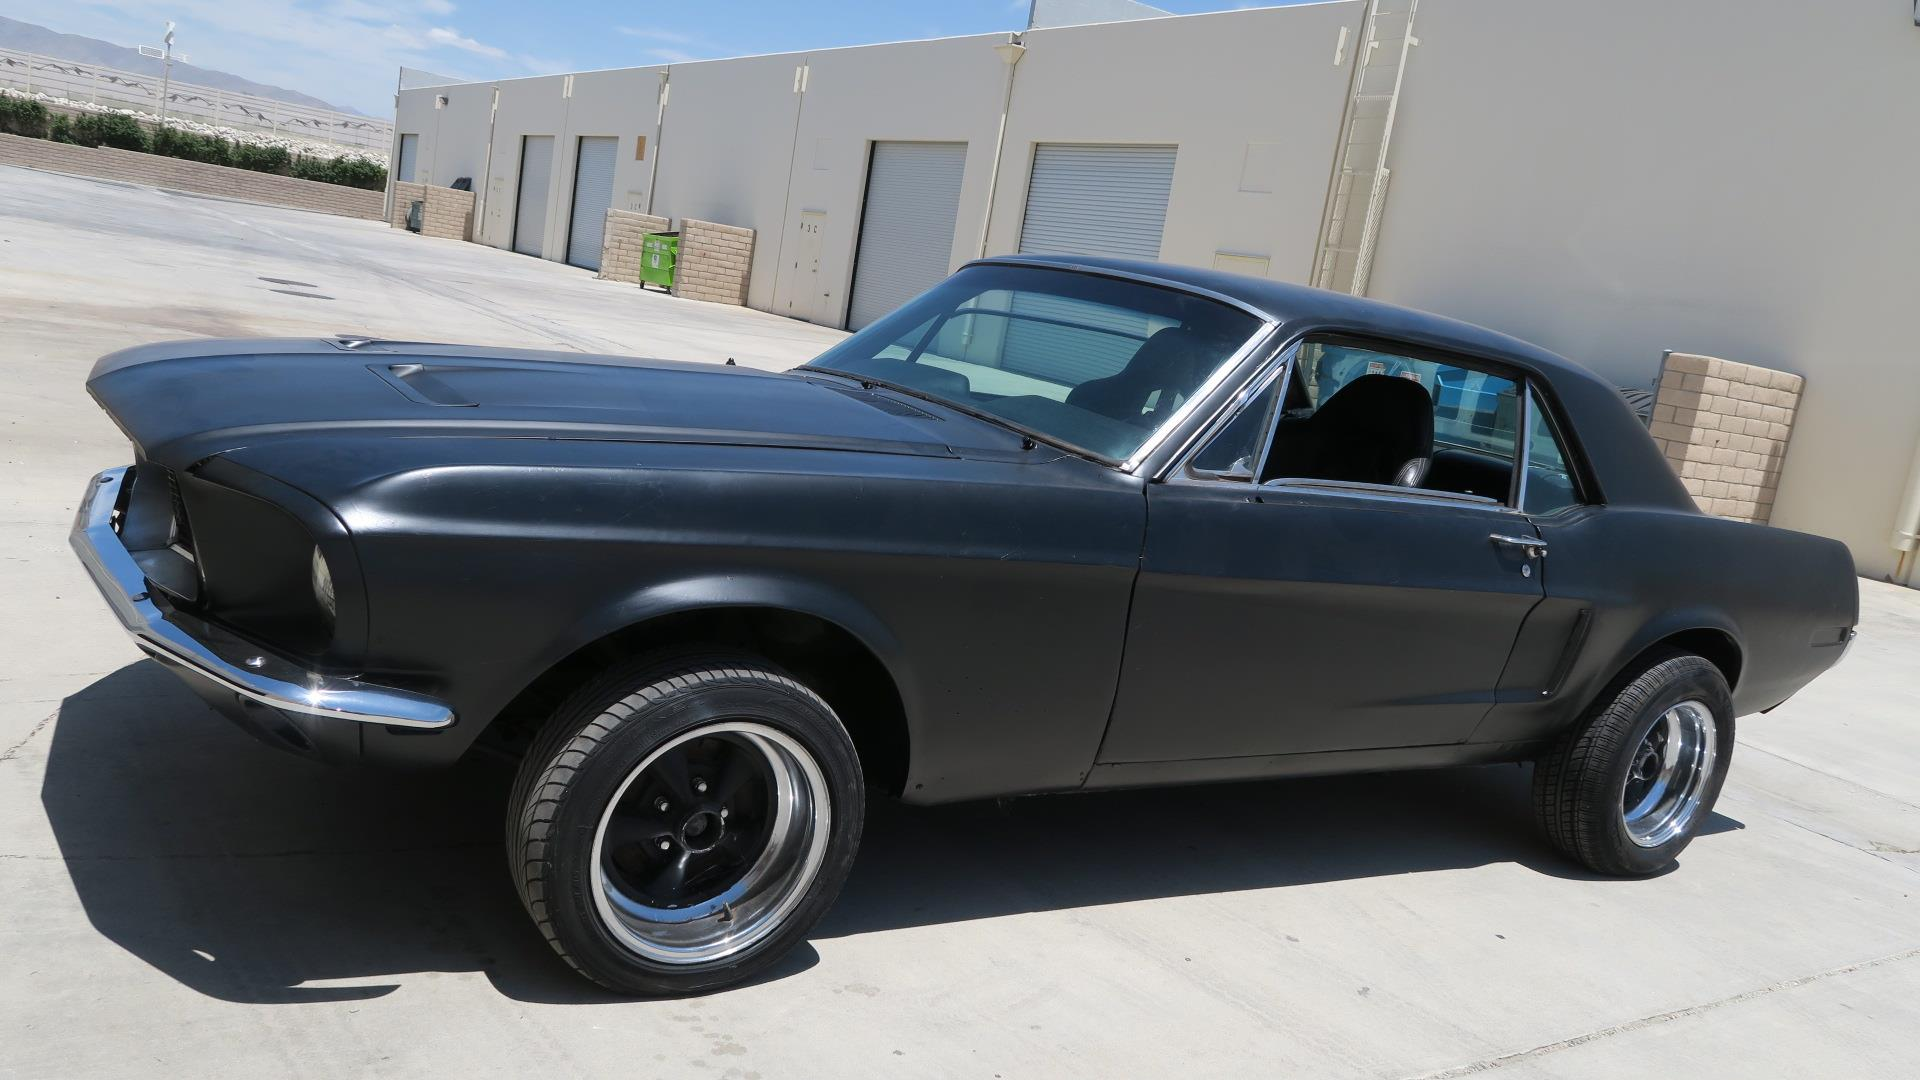 Details about 1968 ford mustang 289 c code california car 4 barrel clean floors